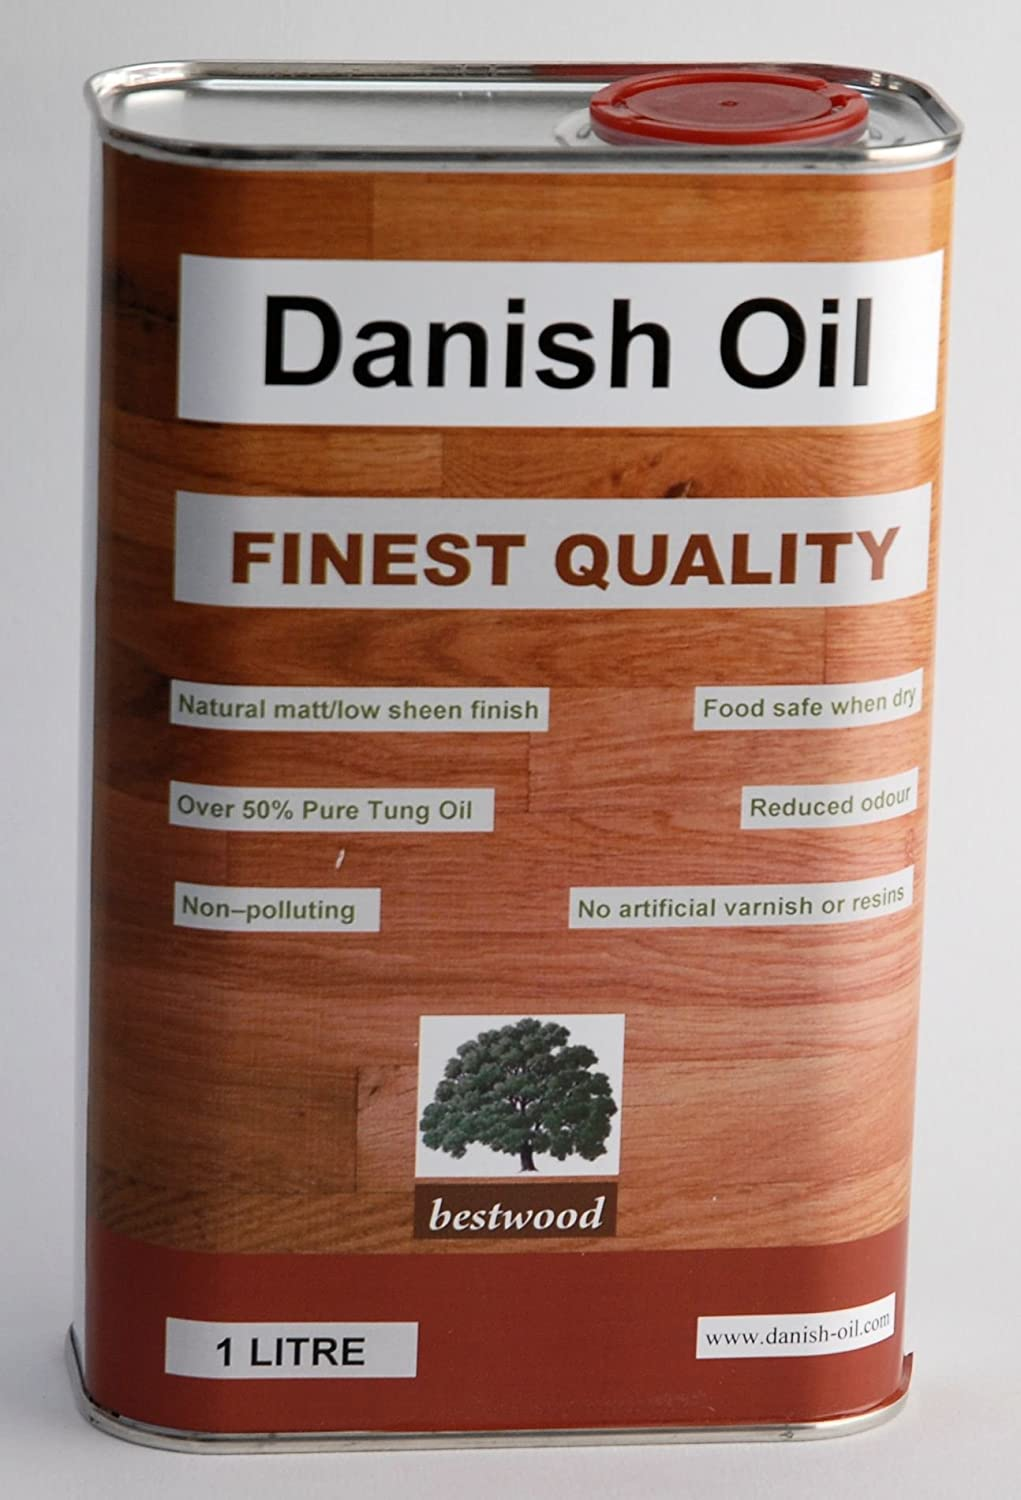 Tung oil vs danish oil - Danish Oil 1 Litre Bestwood Finest Quality Buy Direct Amazon Co Uk Diy Tools